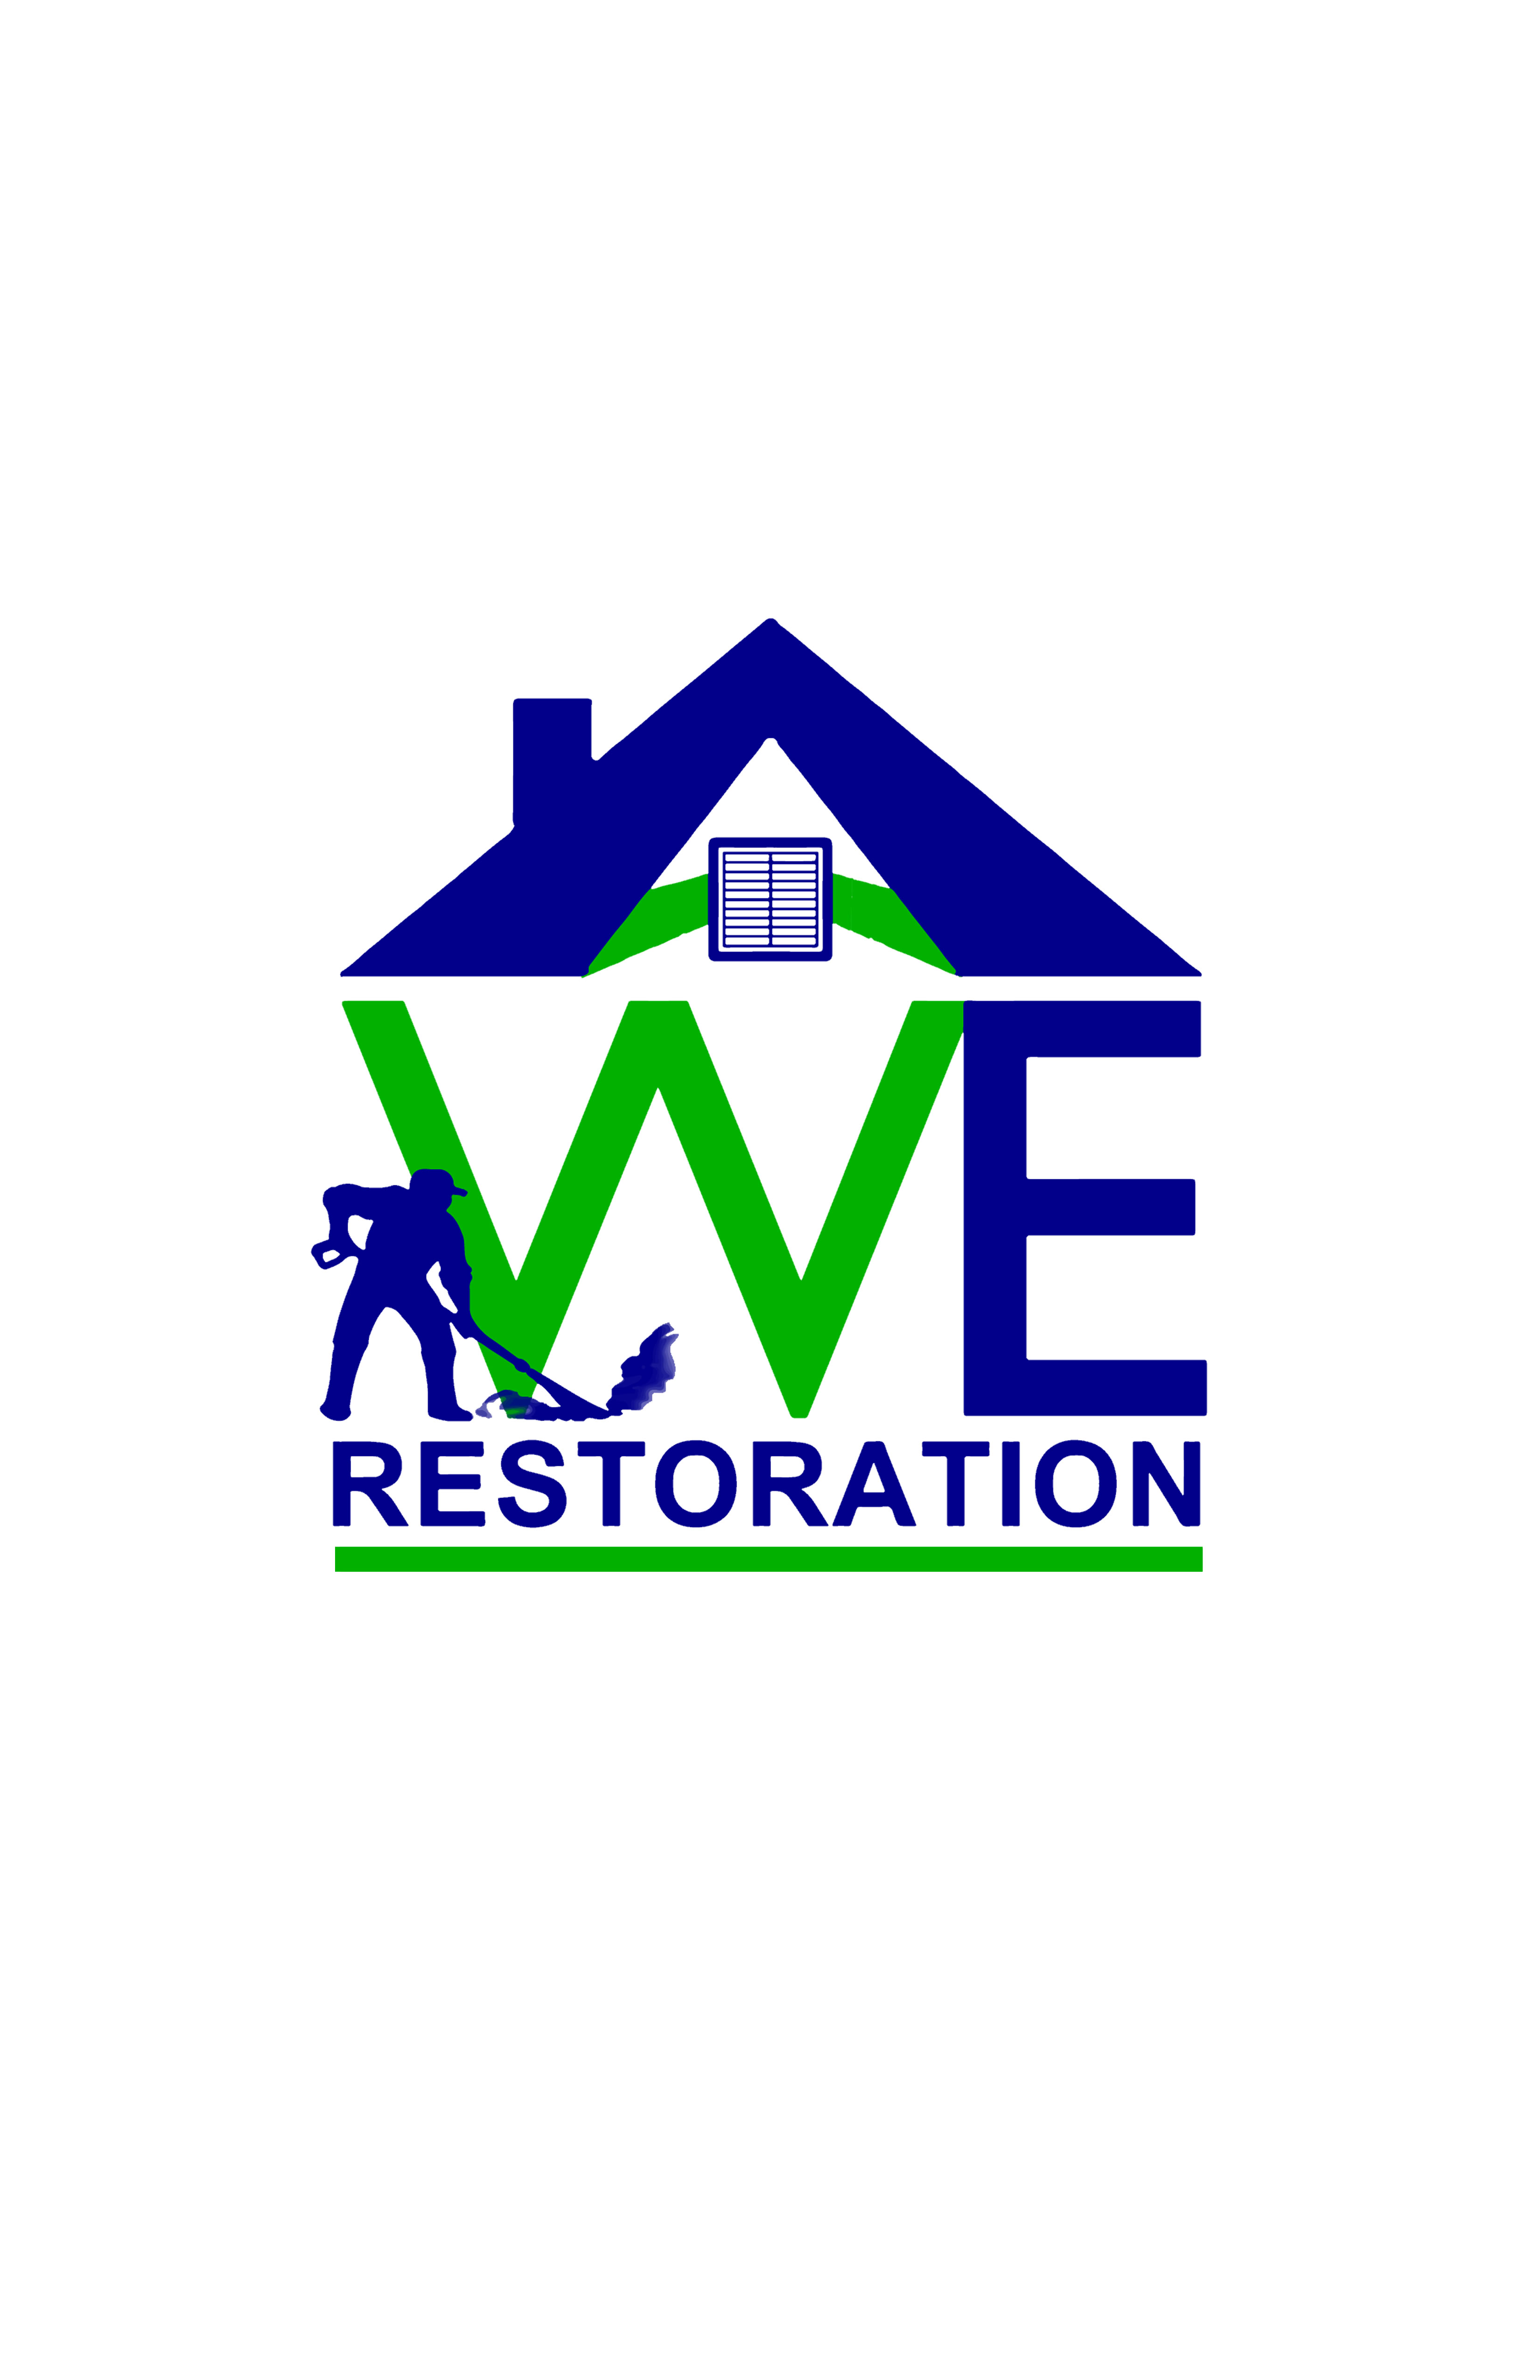 Williams & Embry Restoration LLC logo